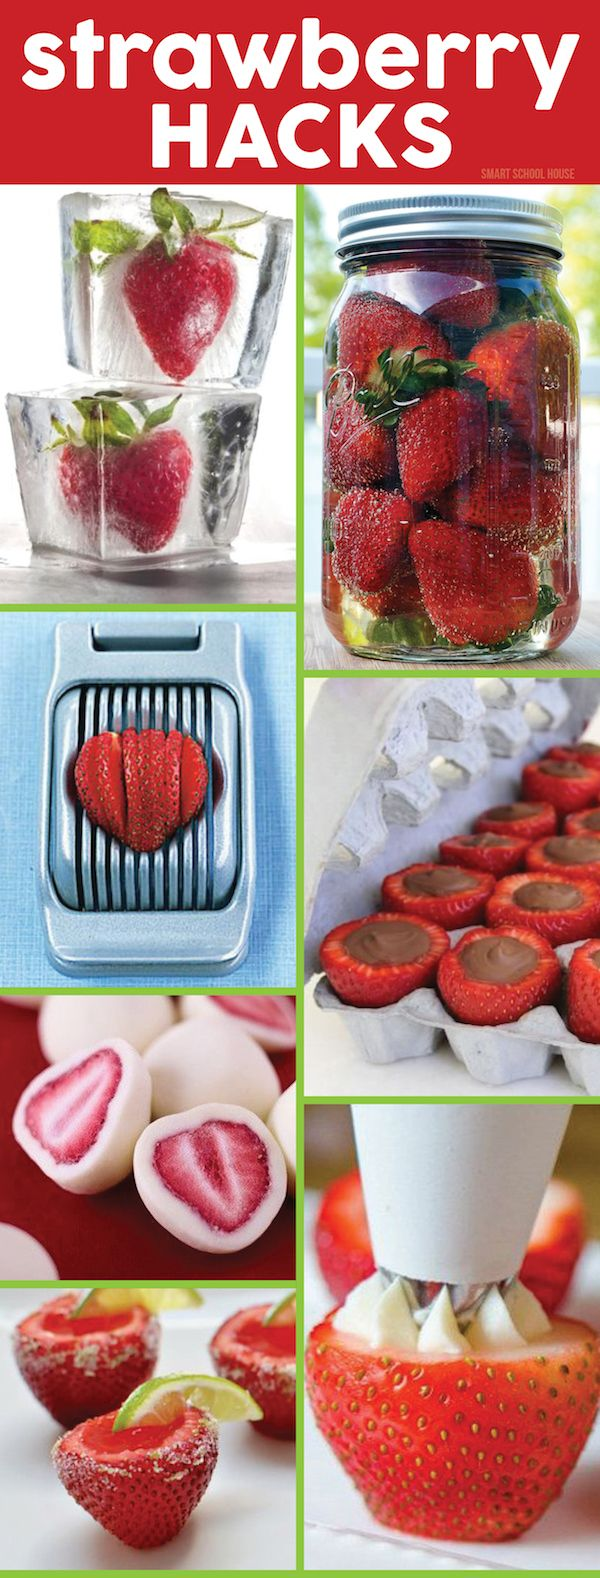 Easy Strawberry Hacks